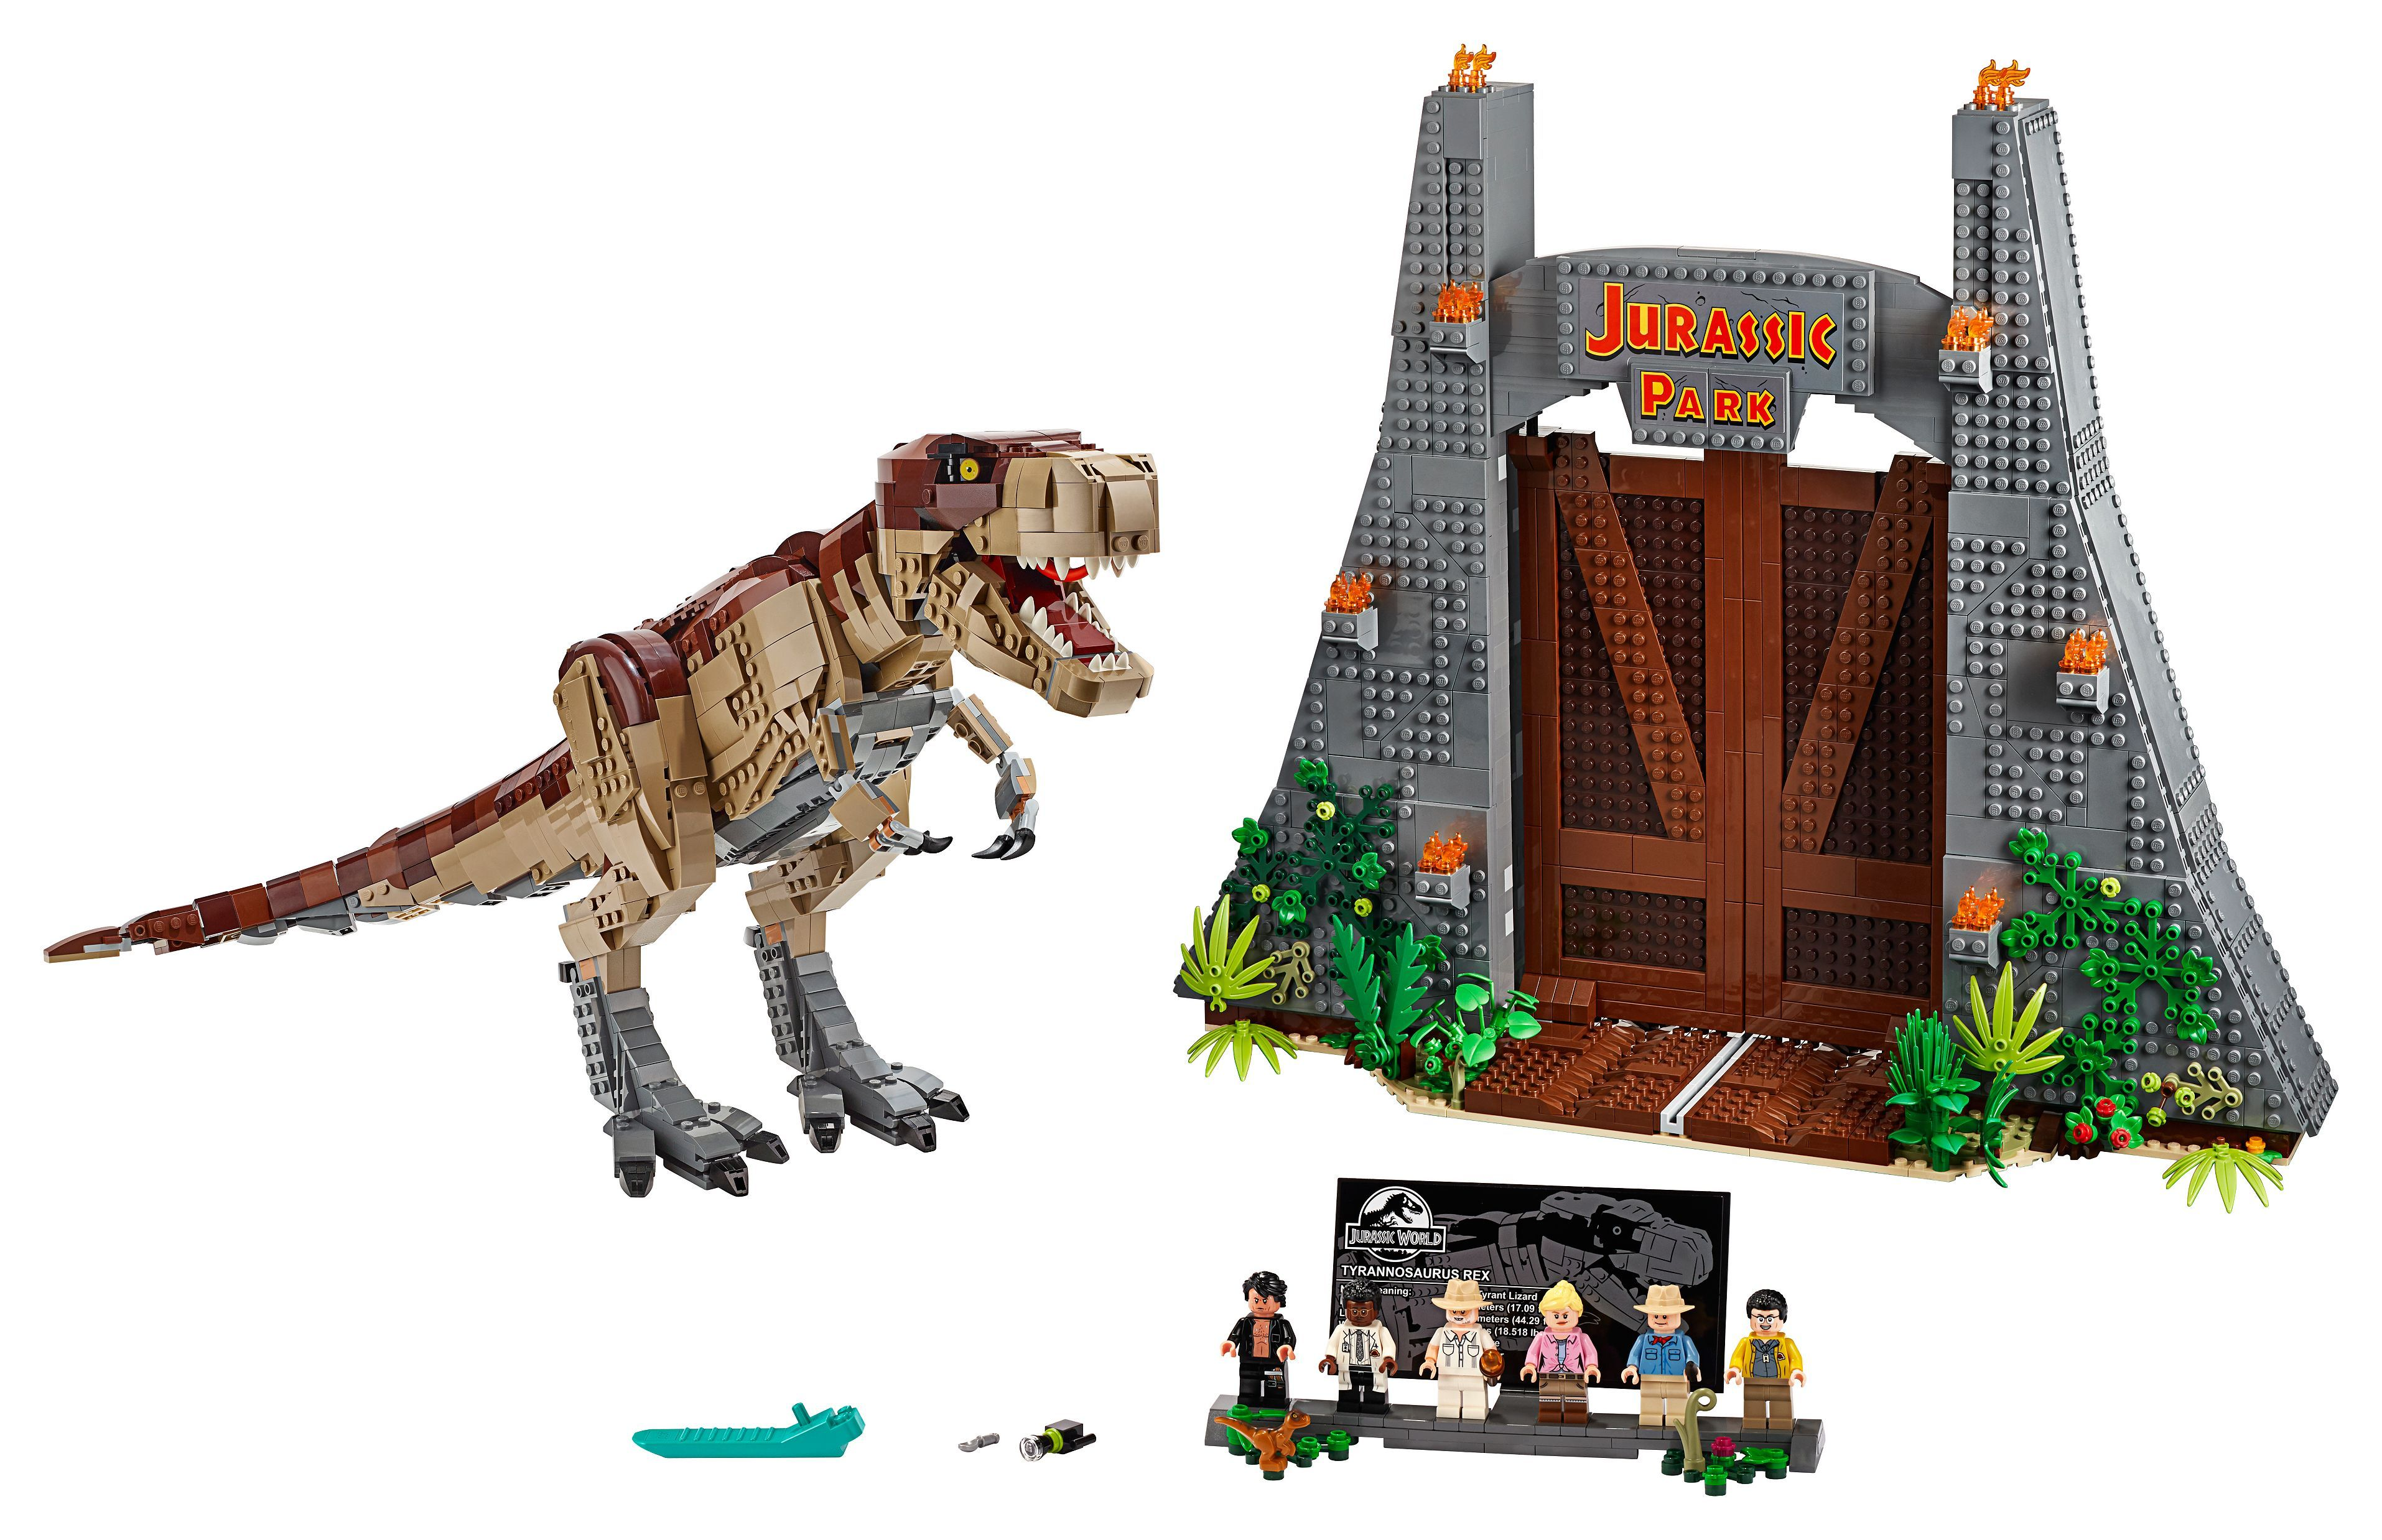 Jurassic Park T Rex Rampage 75936 Jurassic World Buy Online At The Official Lego Shop Us Lego Jurassic World Lego Jurassic Park Jurassic Park World